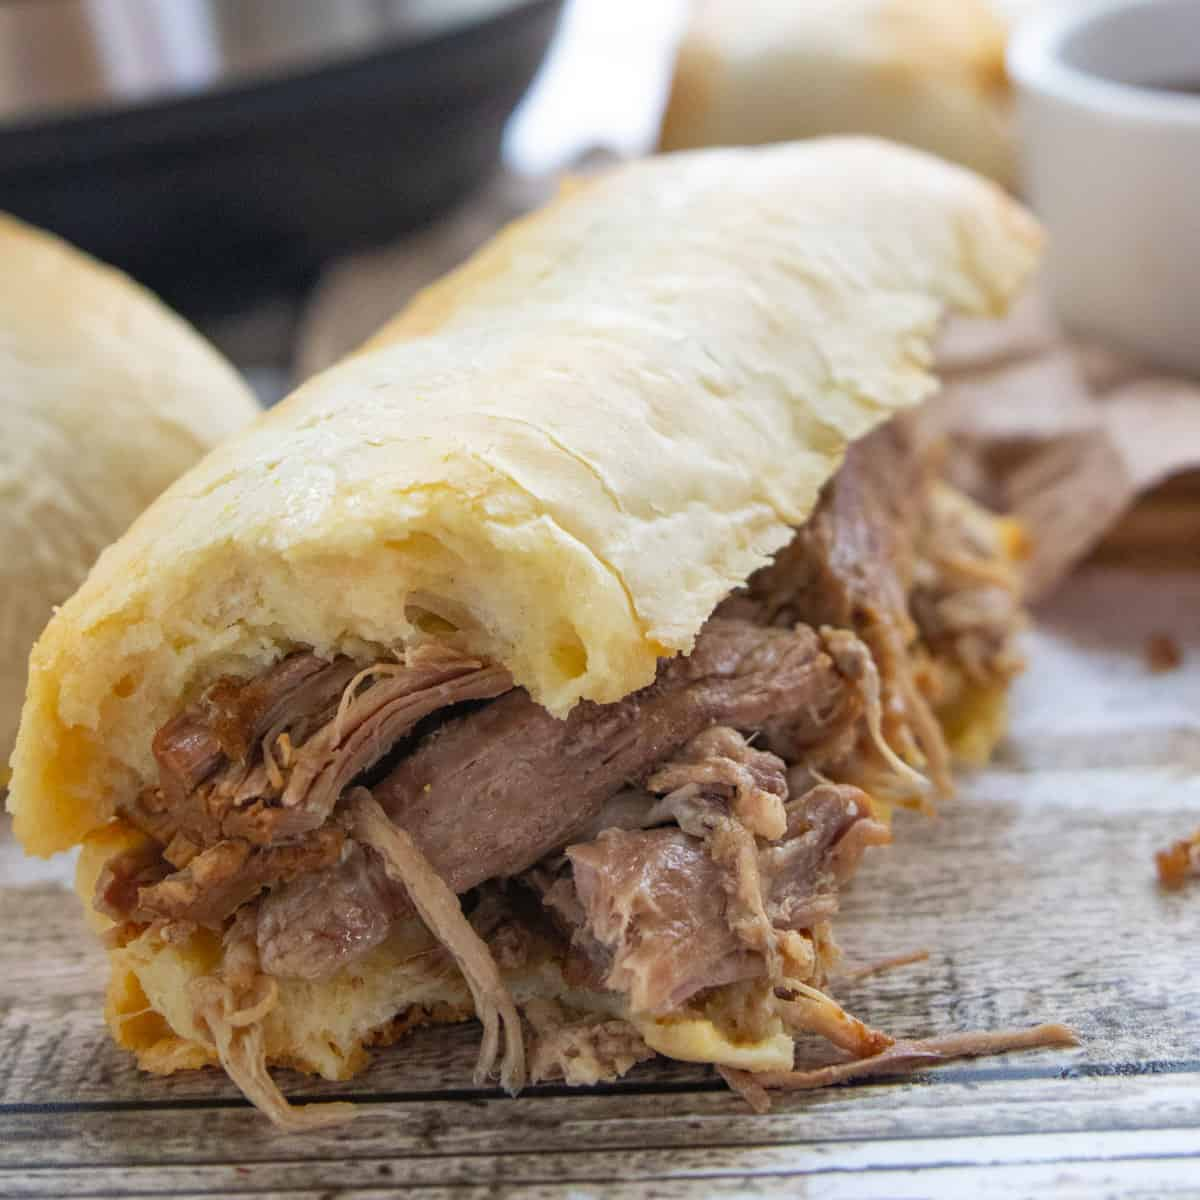 A close up of shredded beef inside a bun with au jus dipping sauce next to it.